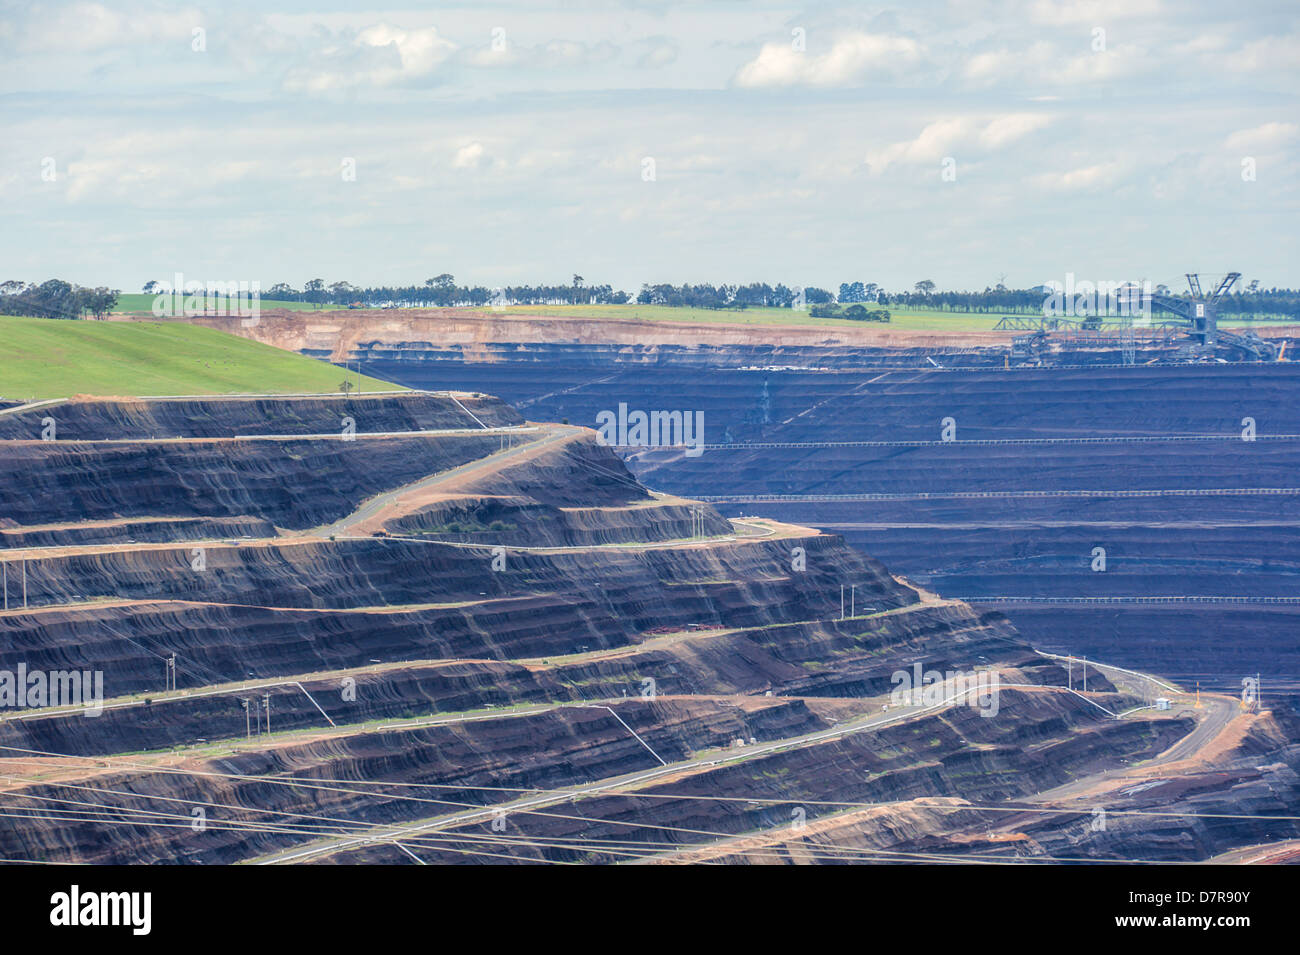 The Loy Yang power stations' open cut brown coal mine in Victoria, Australia. Stock Photo